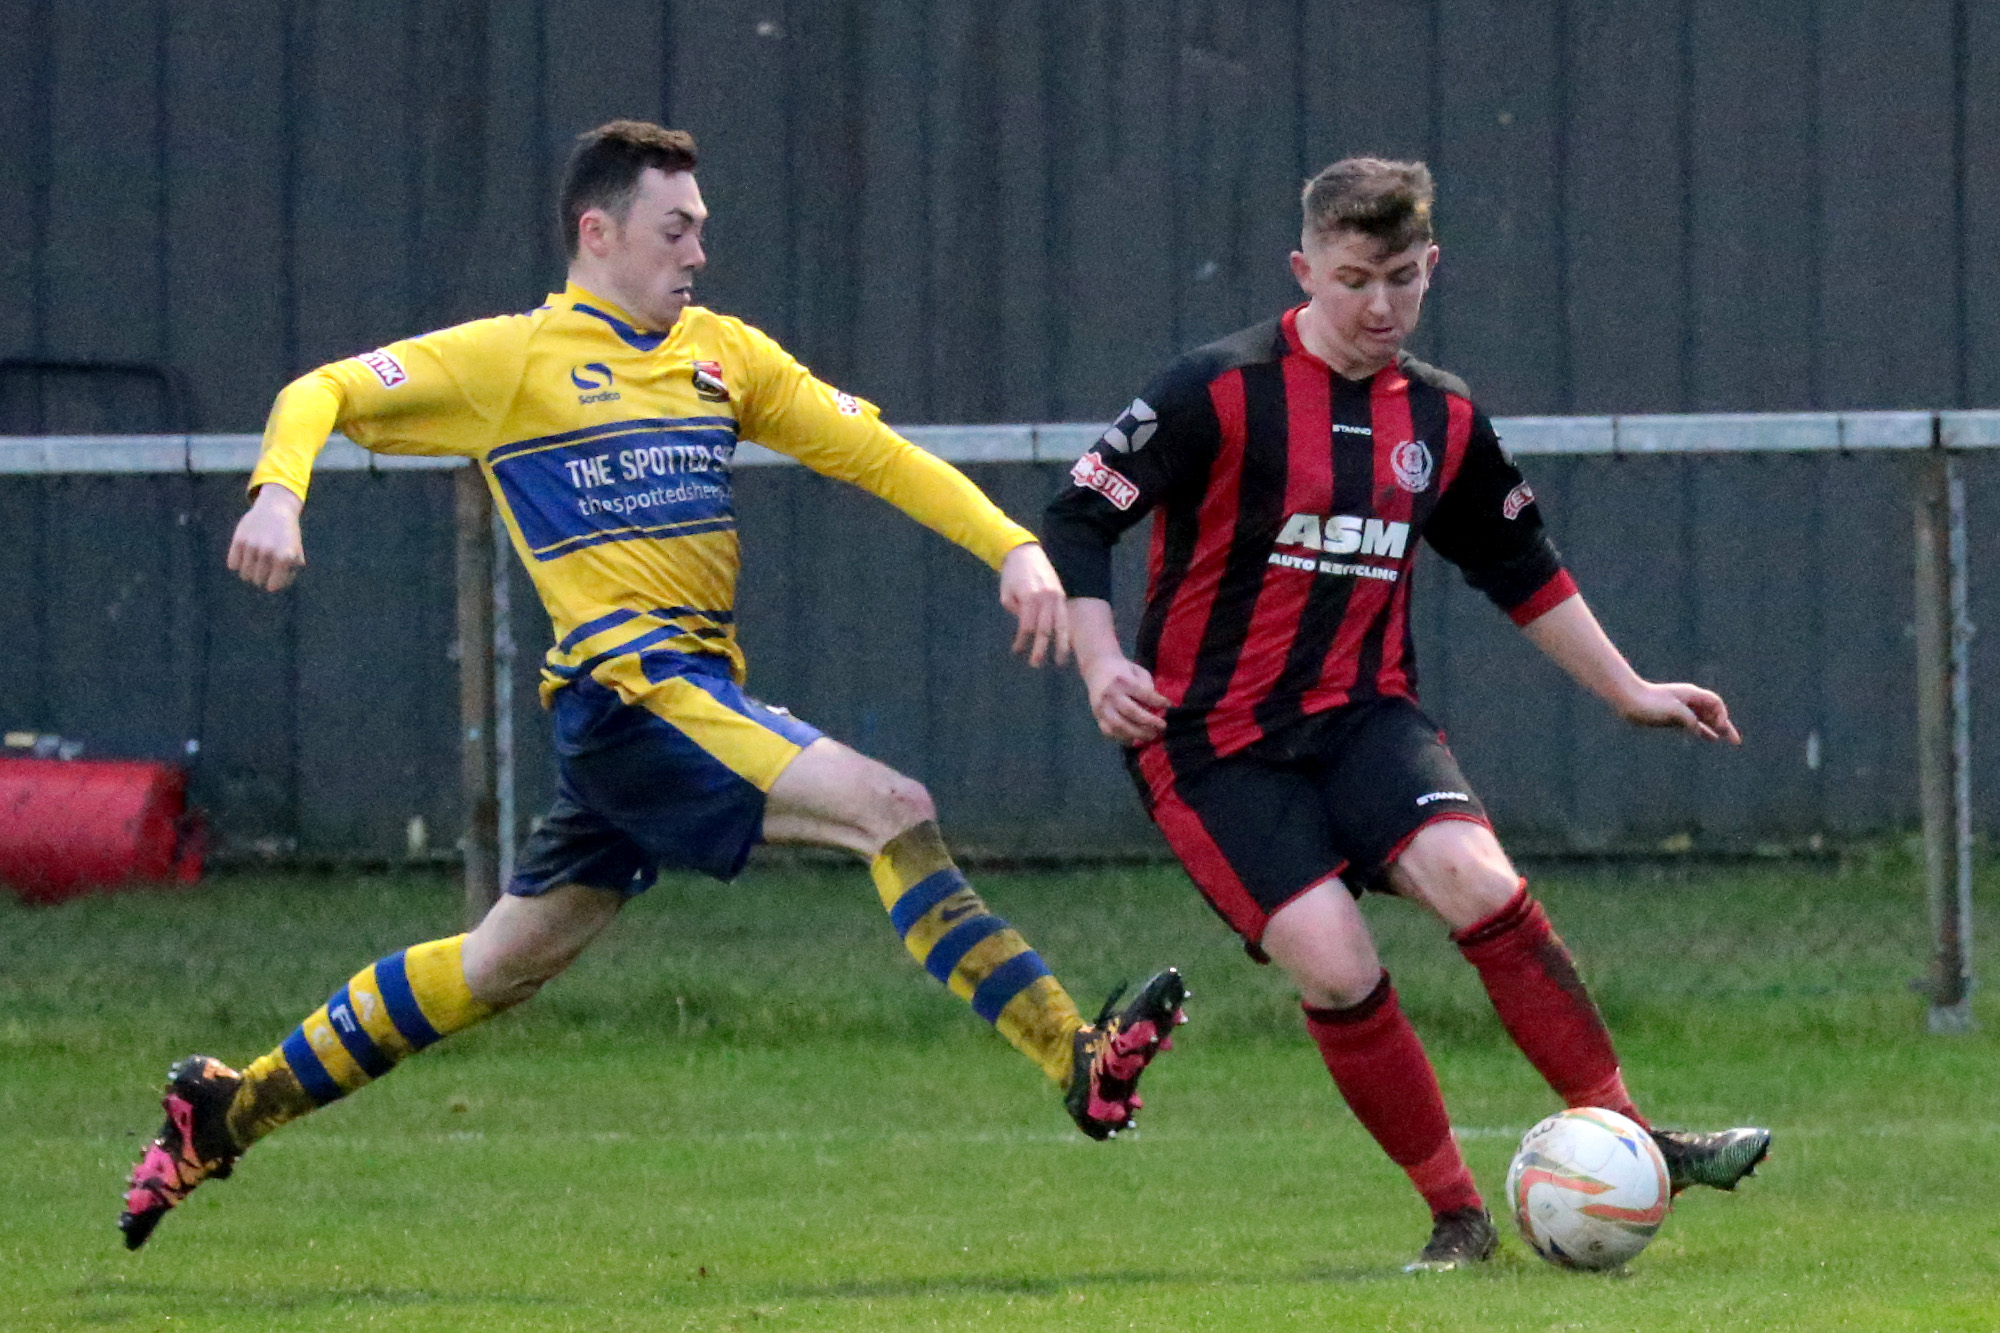 David Lynn (right) scored in Thame United's 3-1 win over AFC Dunstable Picture: Ric Mellis